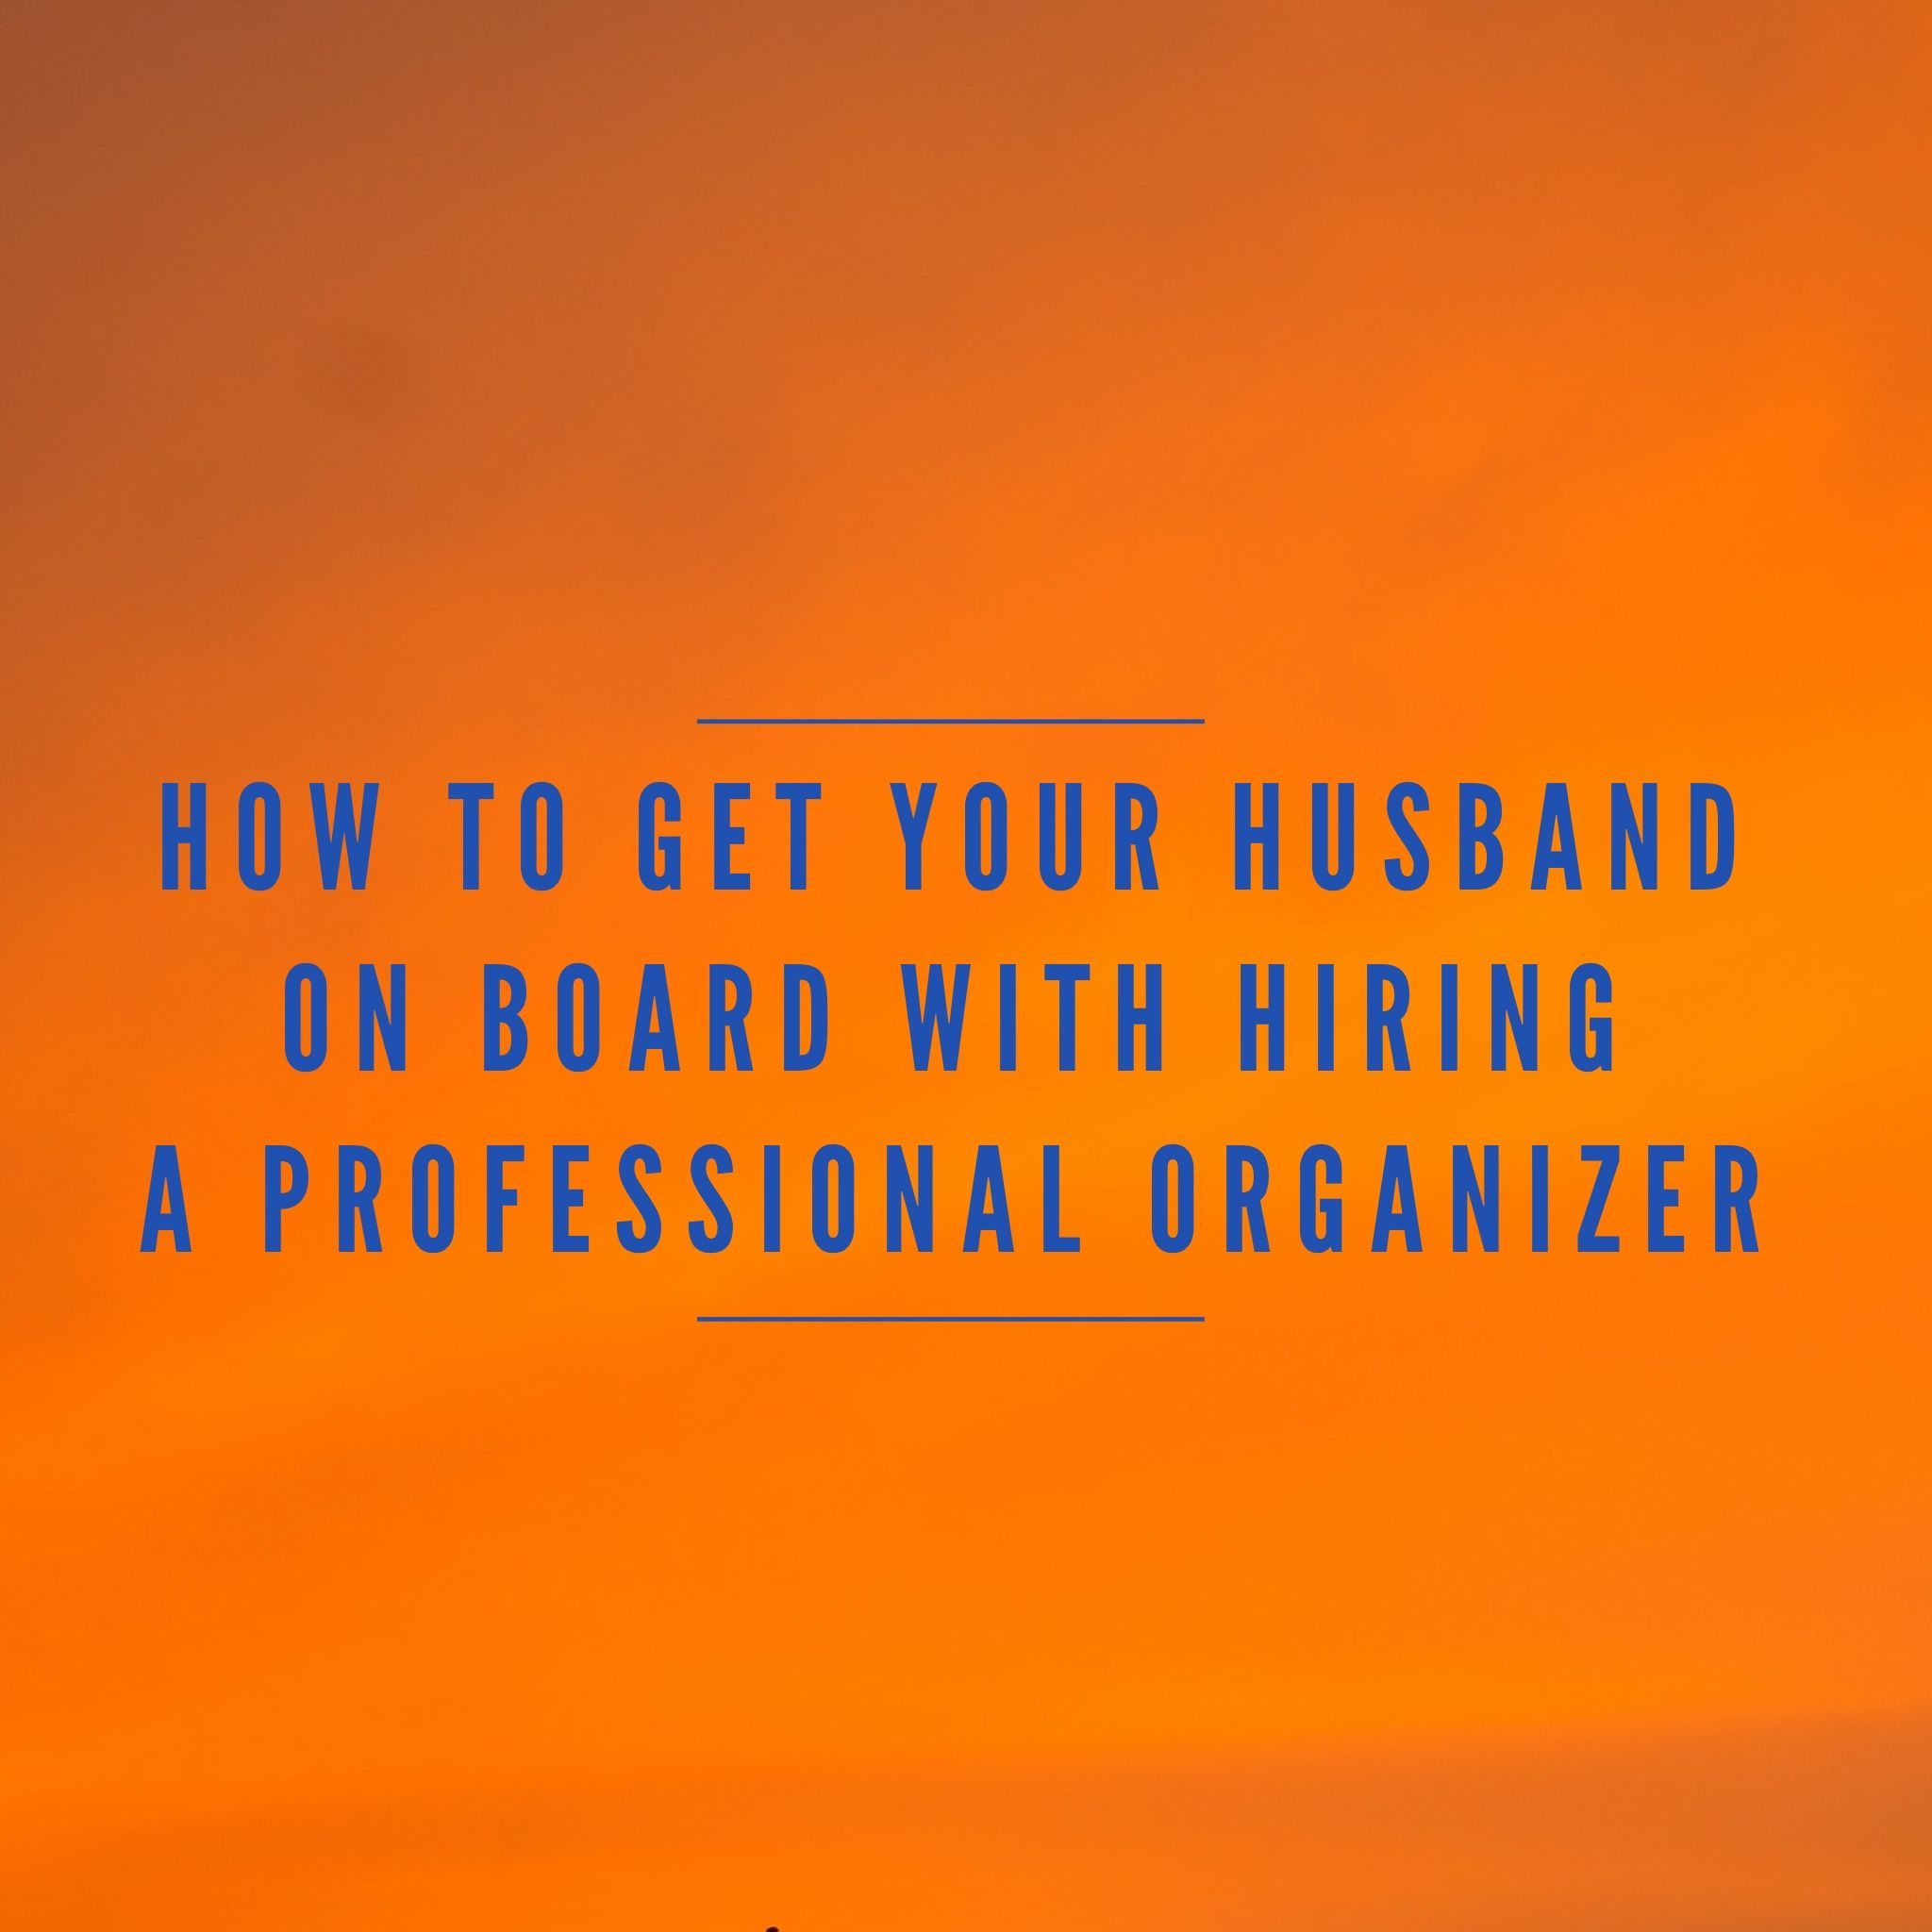 Charmant How To Get Your Husband On Board With Hiring A Professional Organizer. Tips  For Women